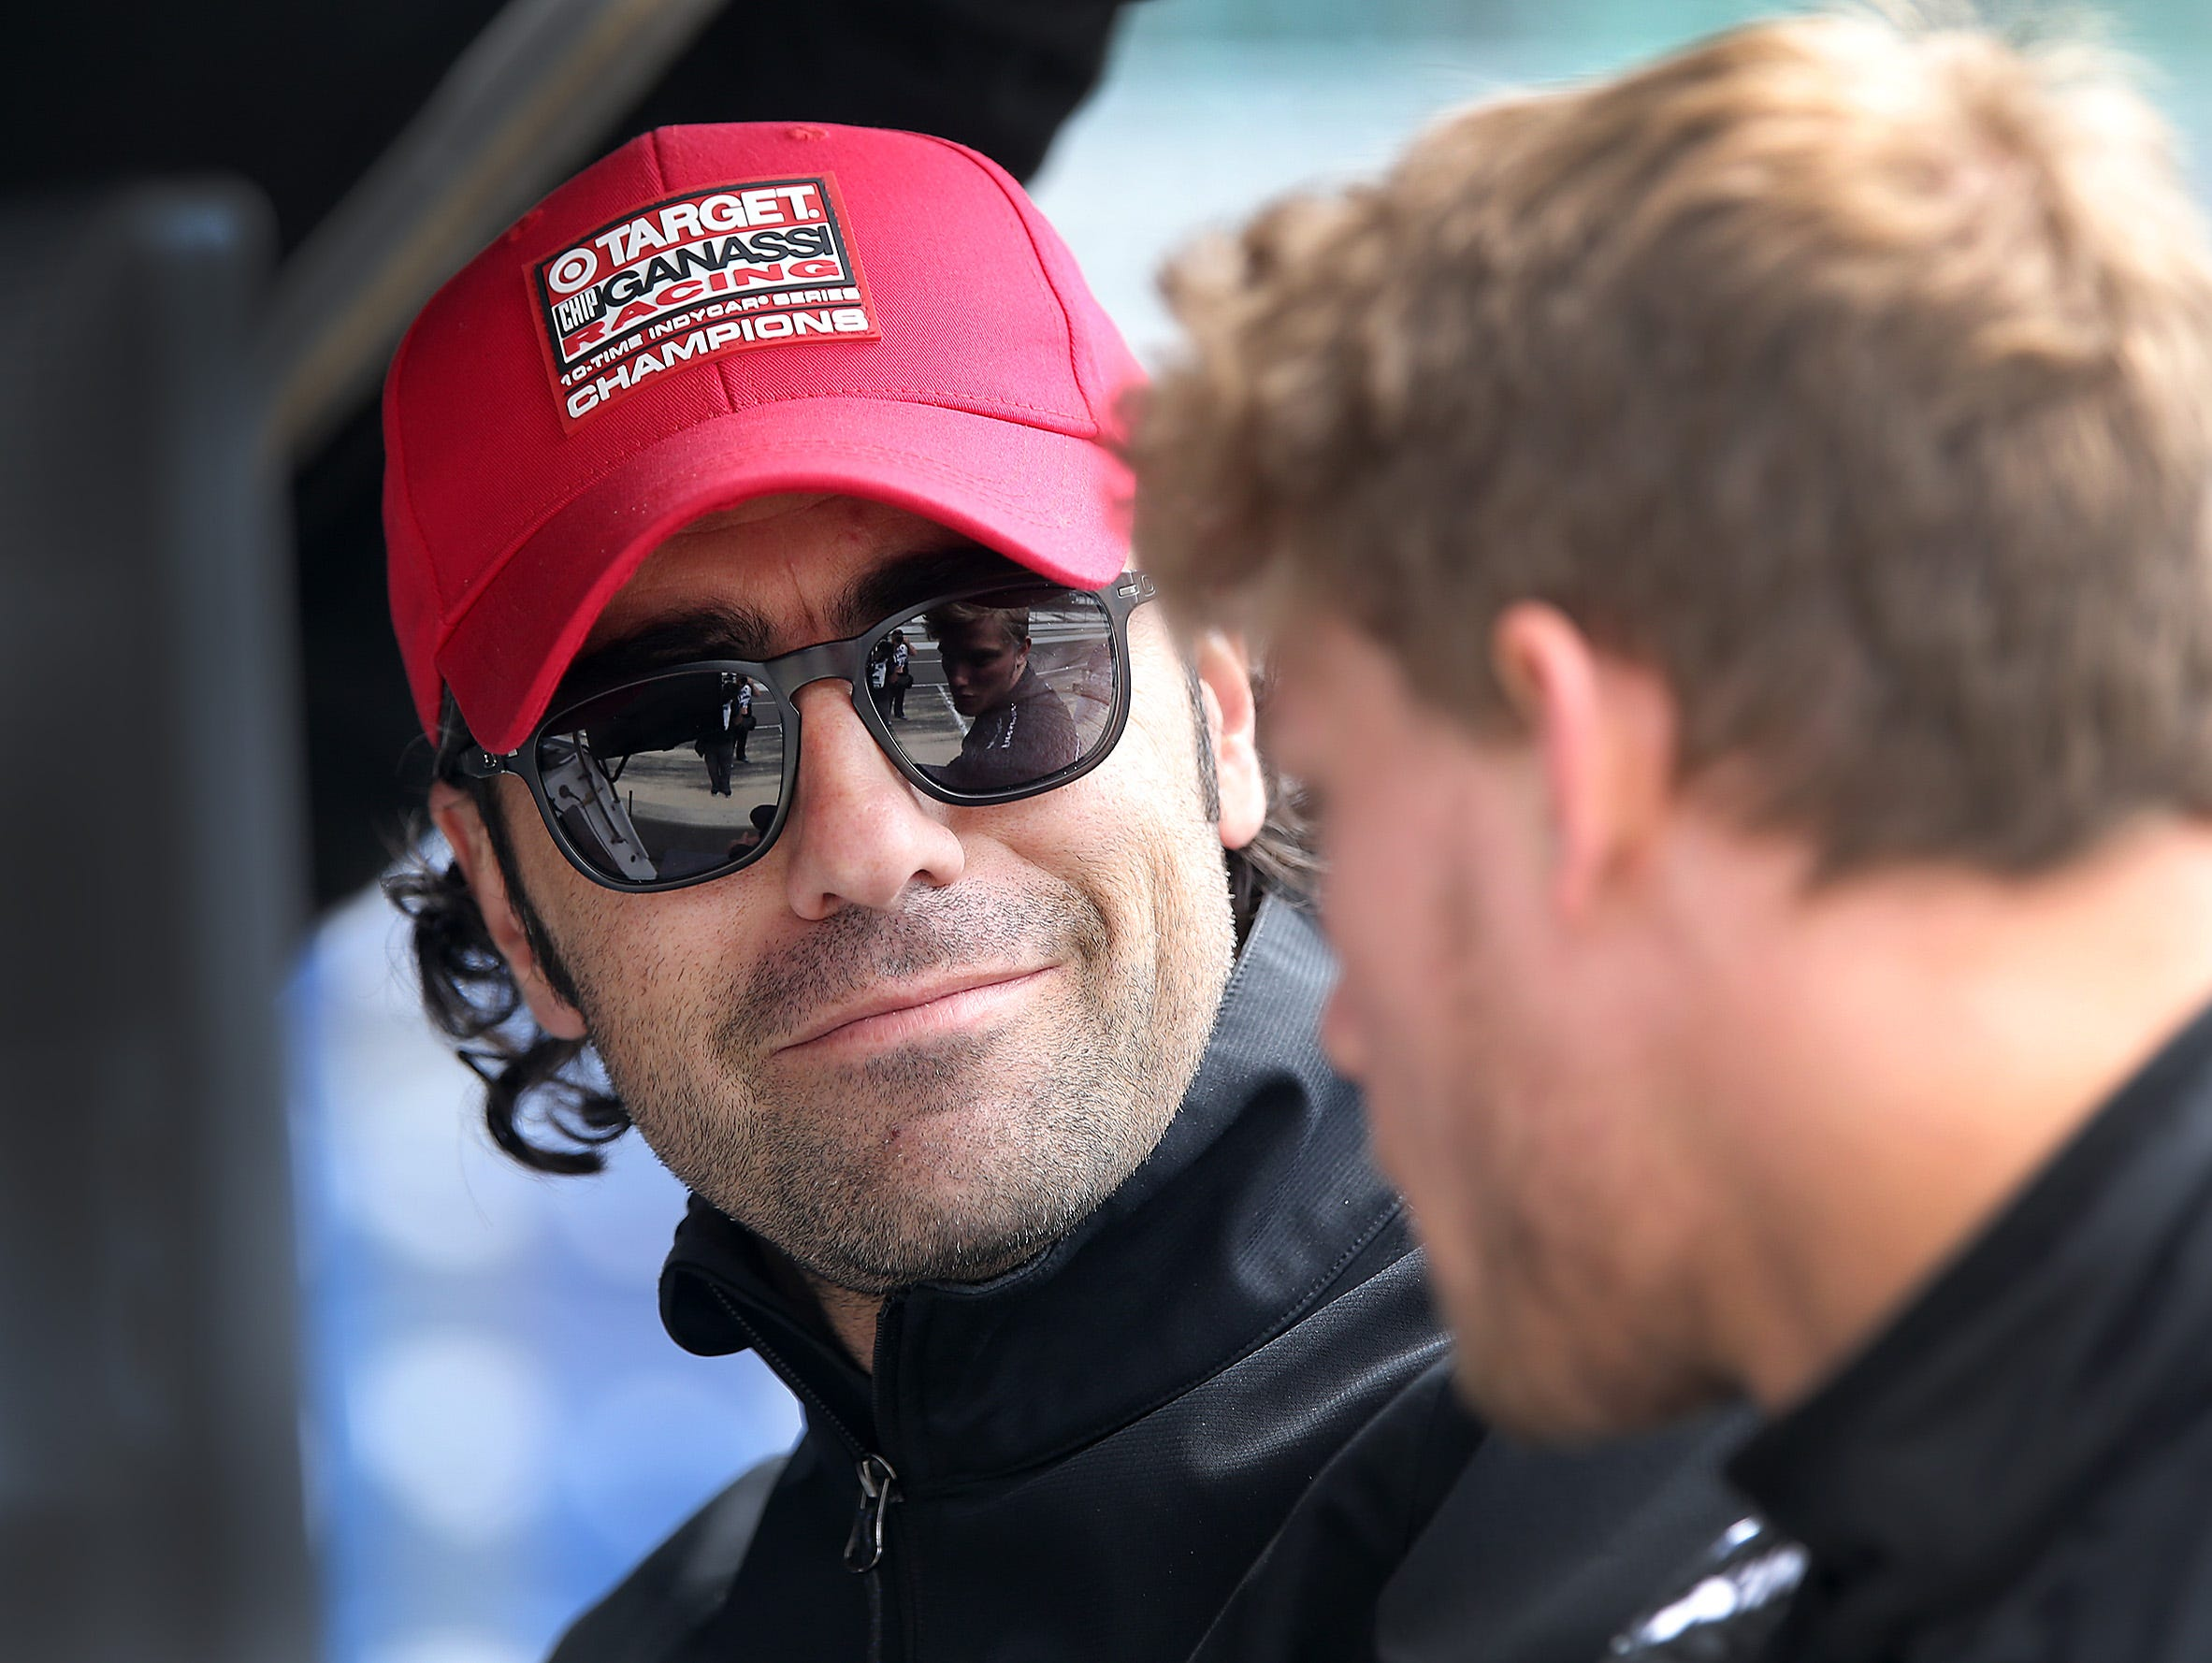 Former Indy 500 winner Dario Franchitti retired from racing after a bad crash in 2013. Now, he is an advisor to Ganassi Racing, coaching 20-year-old Sage Karam (right).